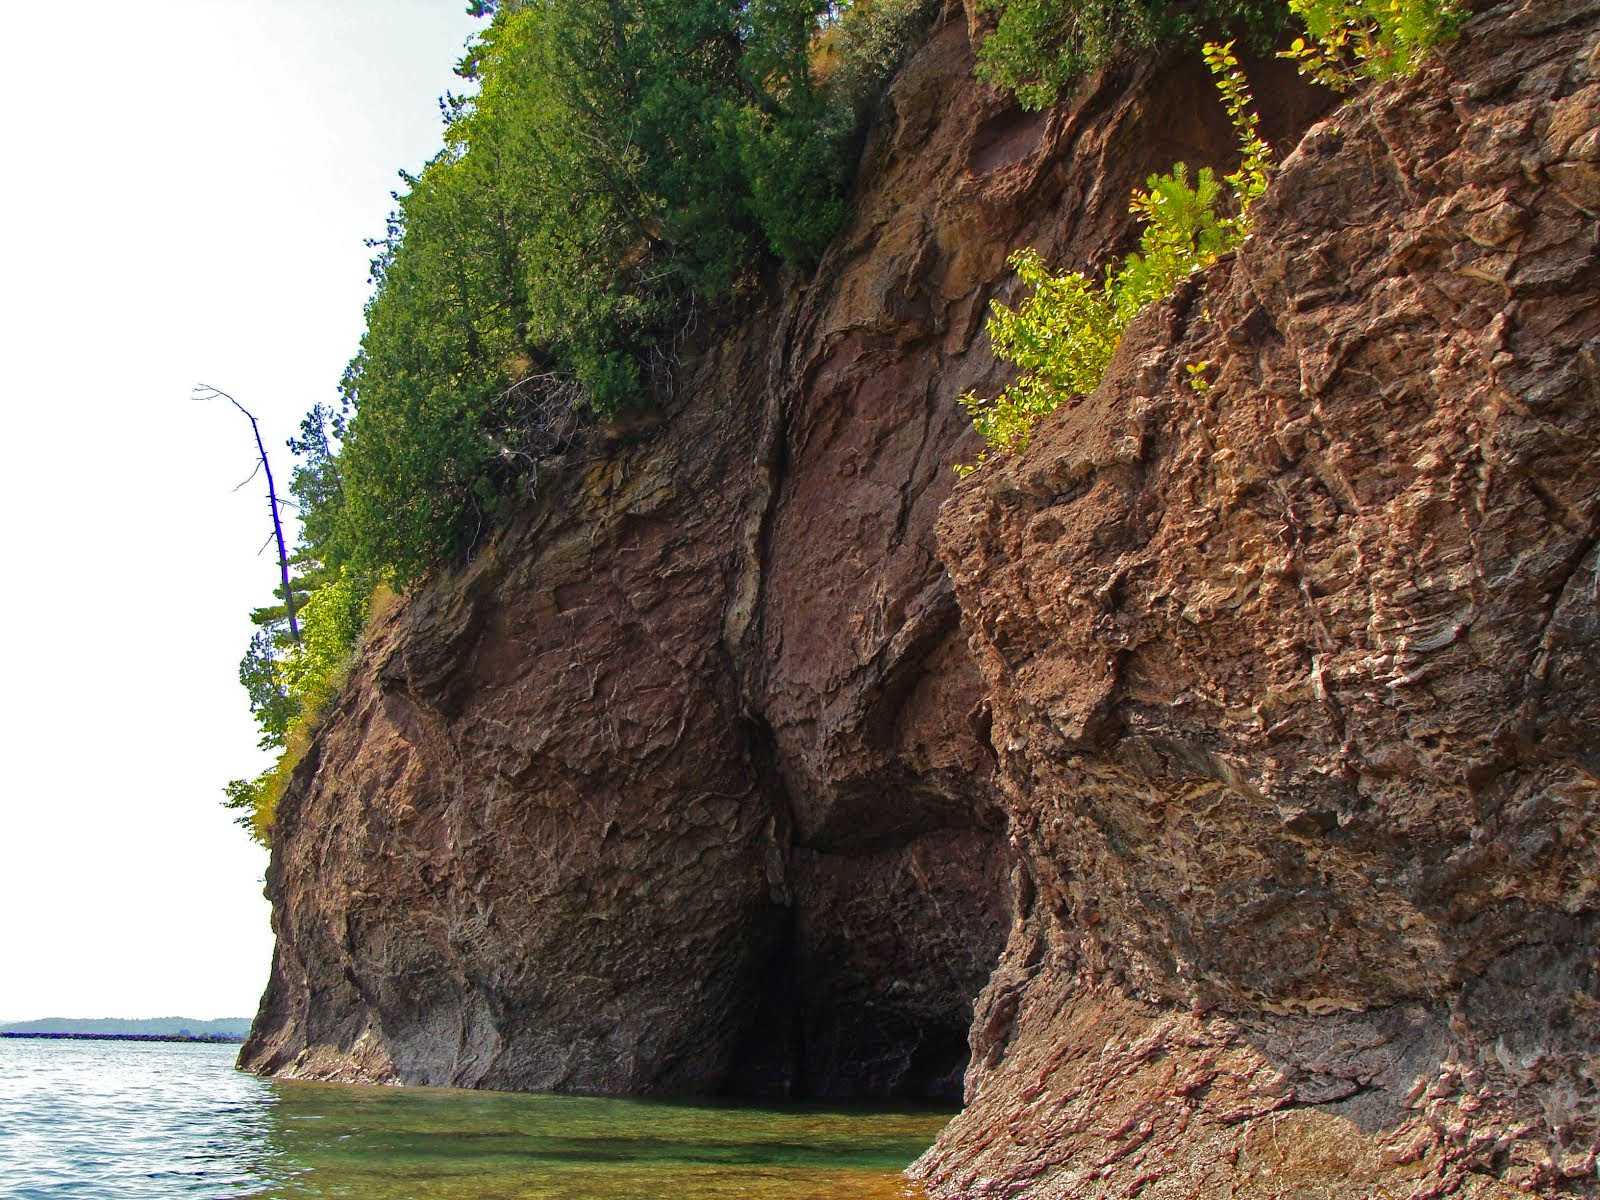 Lake Superior Caves ... Agates Abound